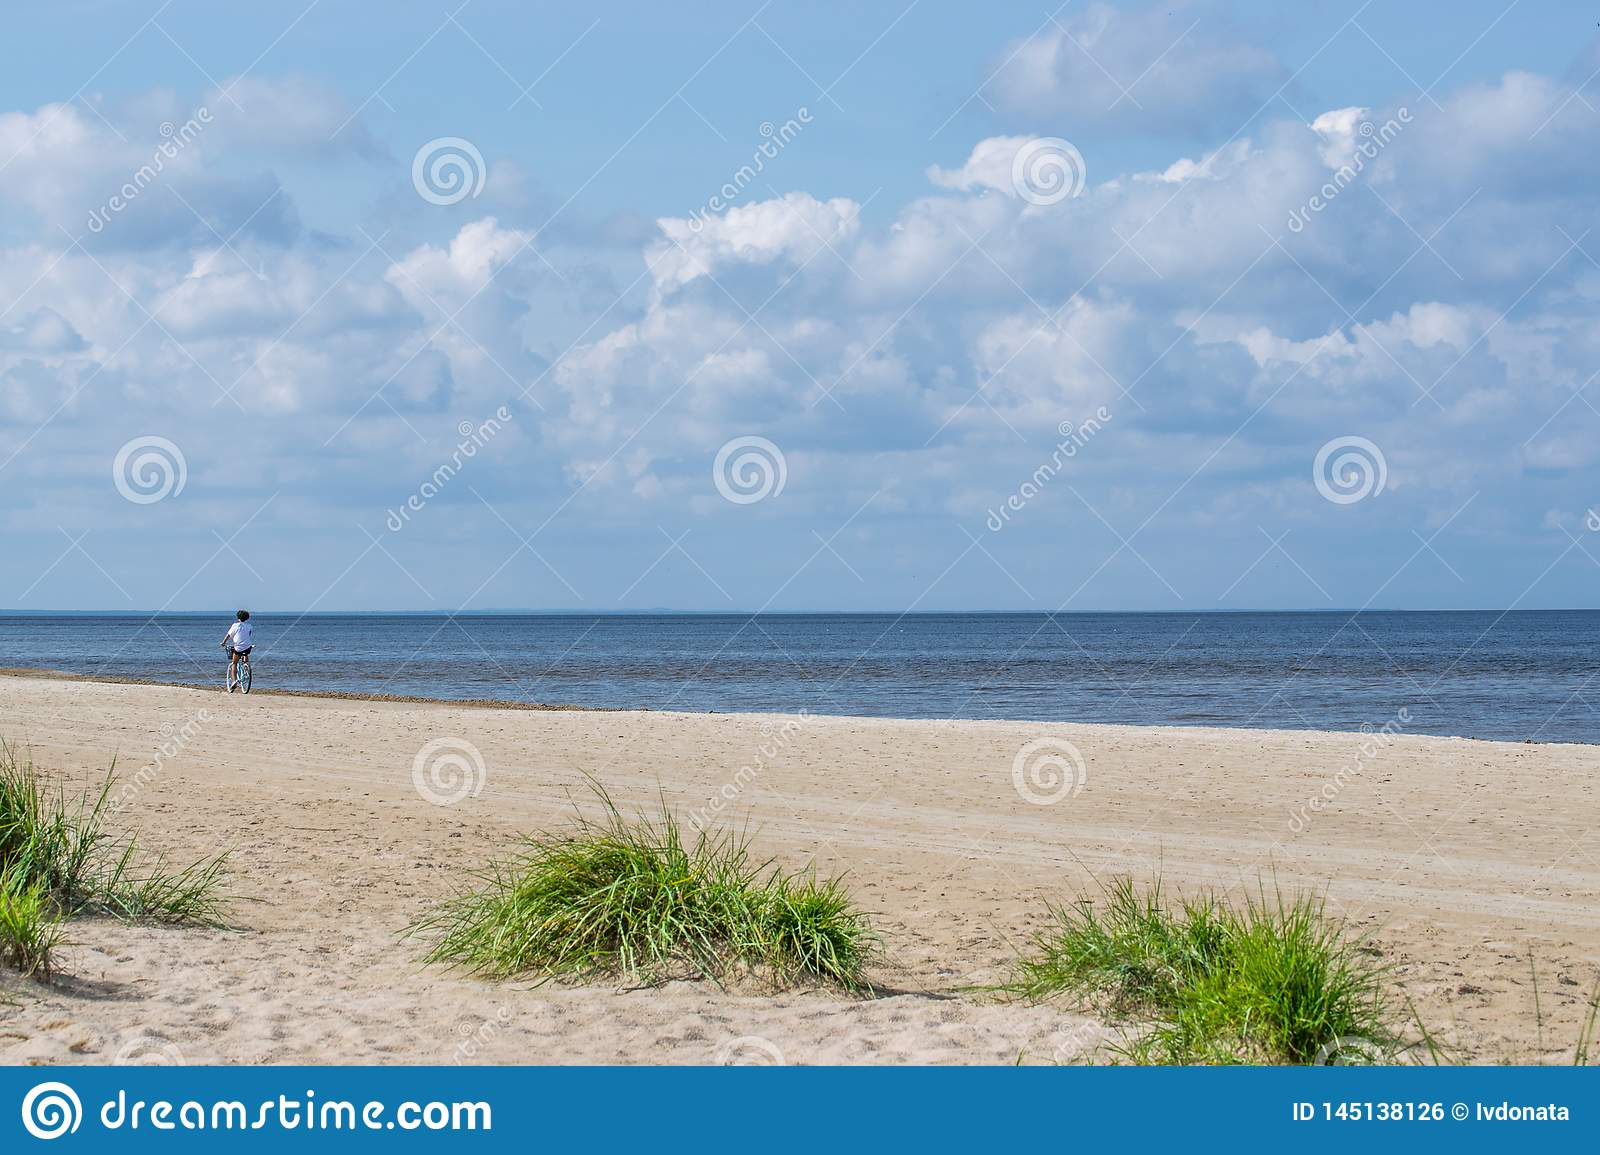 Coast of beach with lonely cyclist in the bright sunny day. Sunny bright day with white clouds.